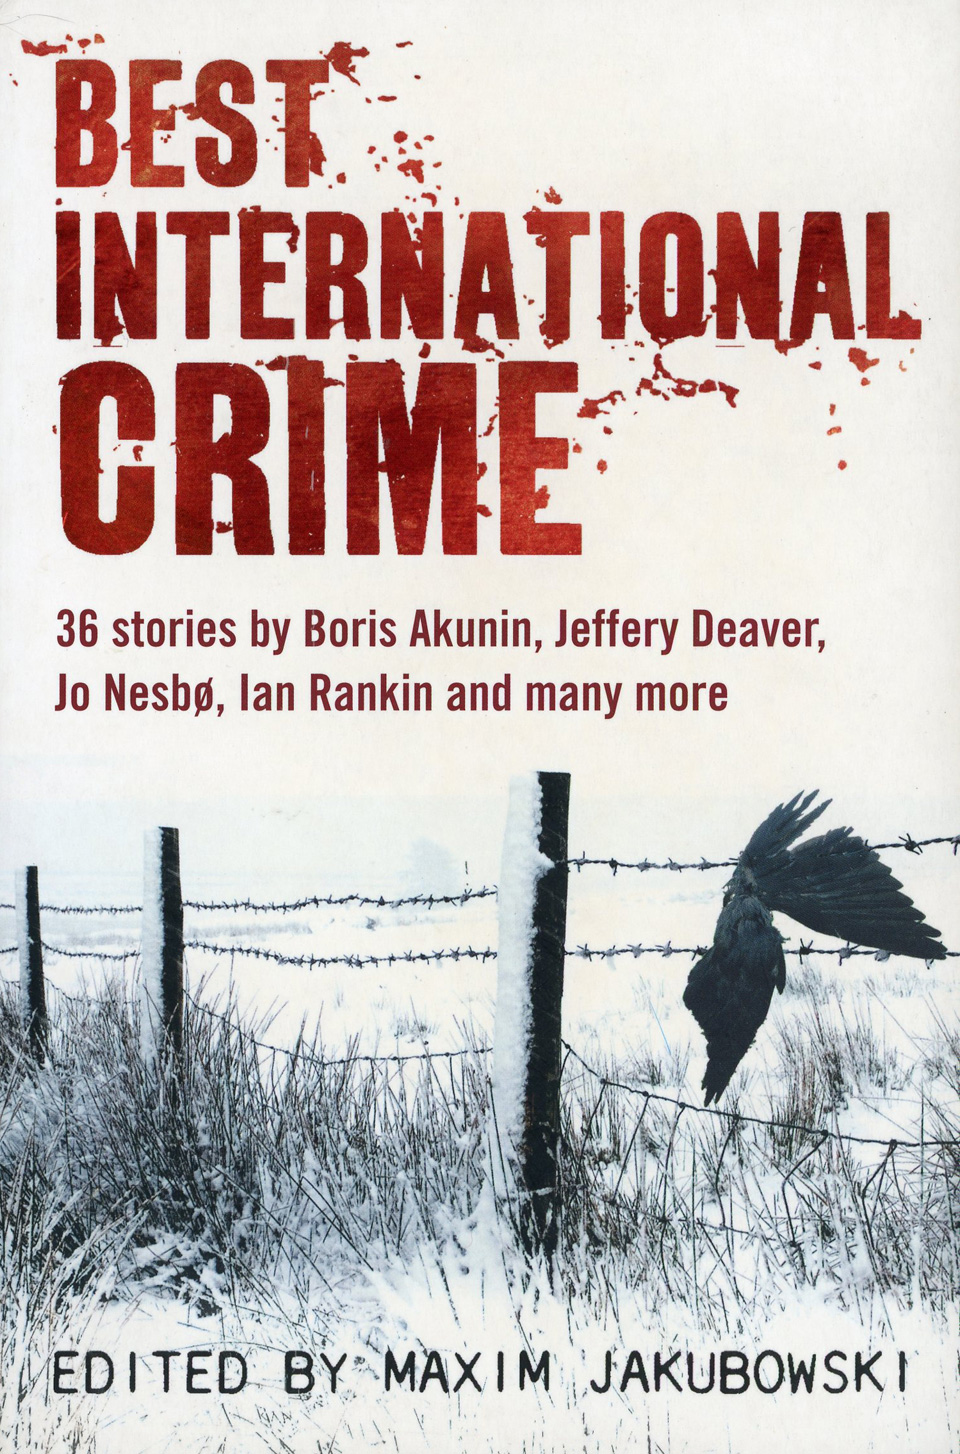 Best International Crime